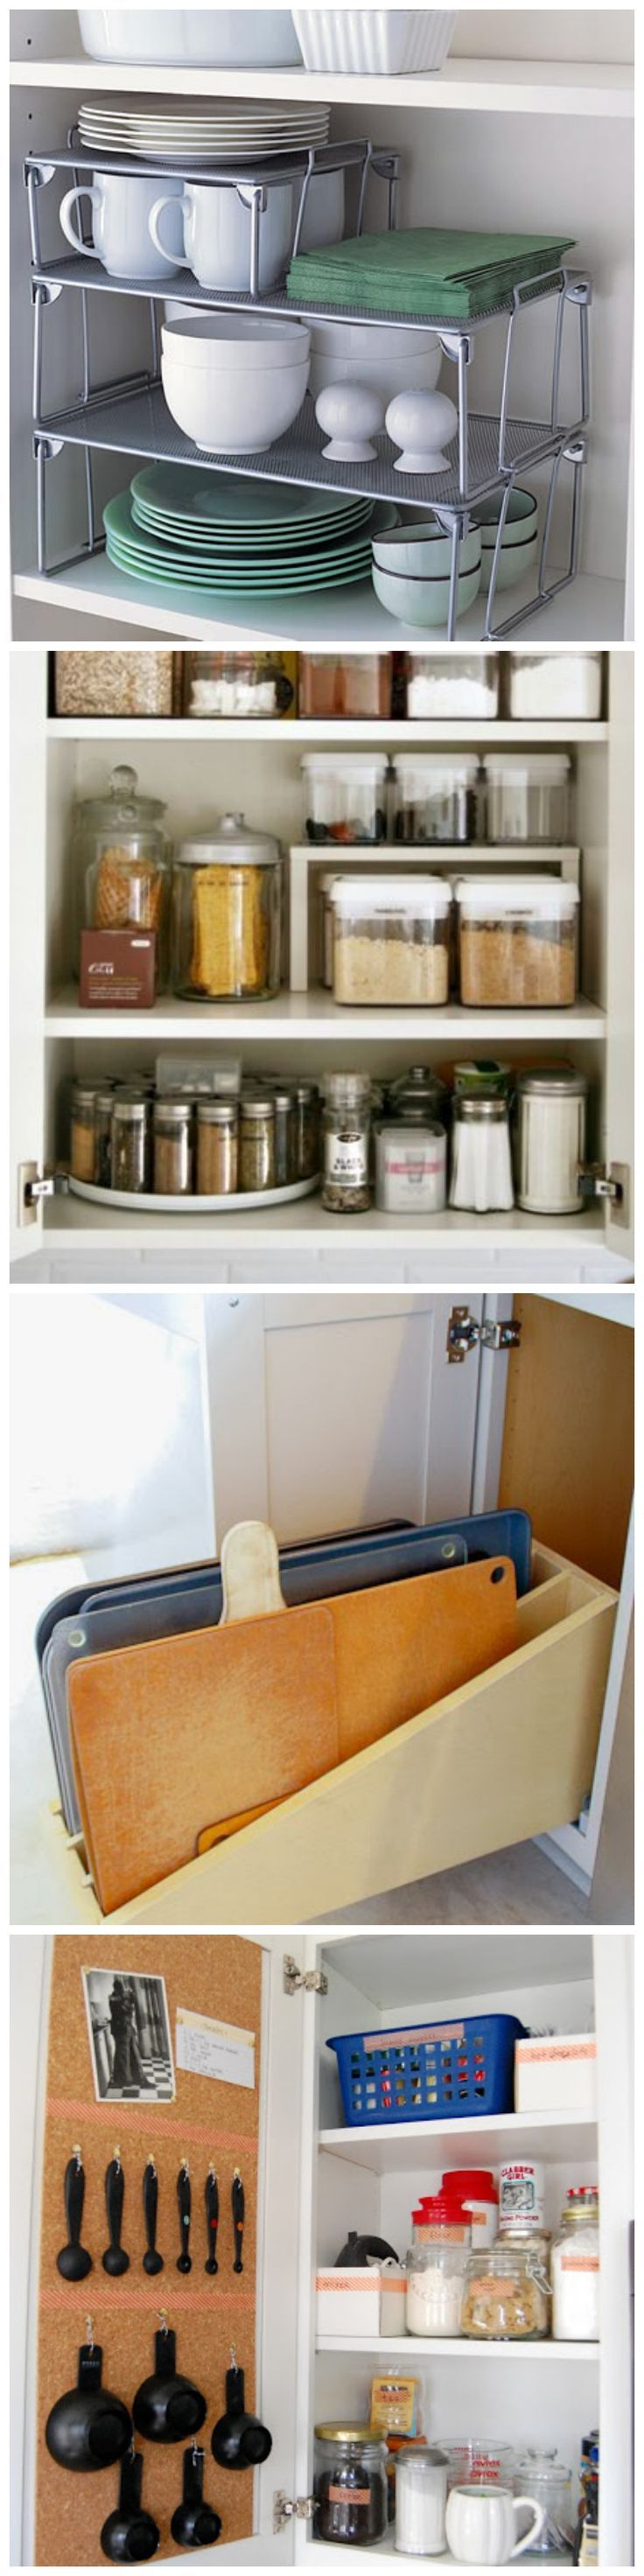 18 Organizing Ideas That Make the Most